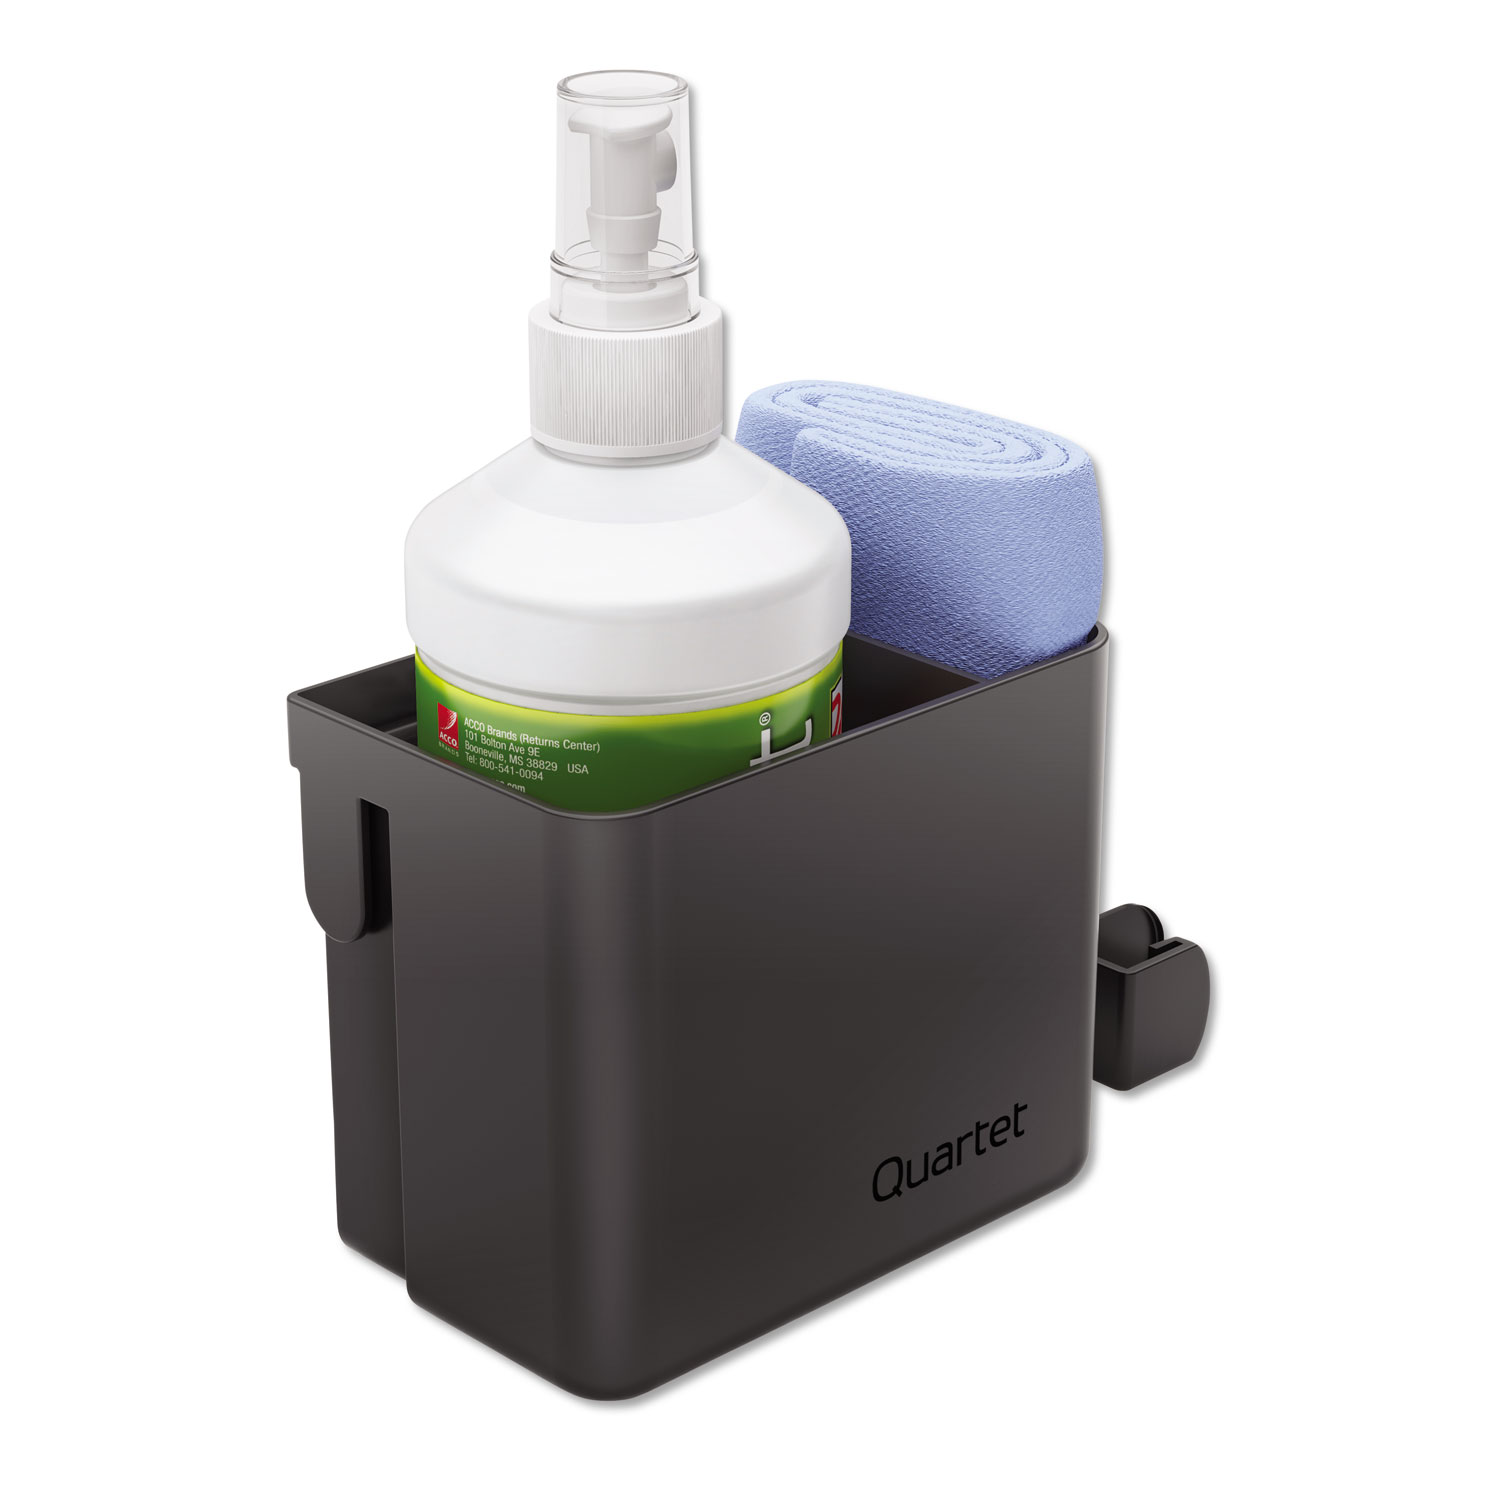 Picture of Prestige 2 Connects Cleaning Dry-Erase Kit, Caddy, 16 oz Bottle/Magnetic Cloth